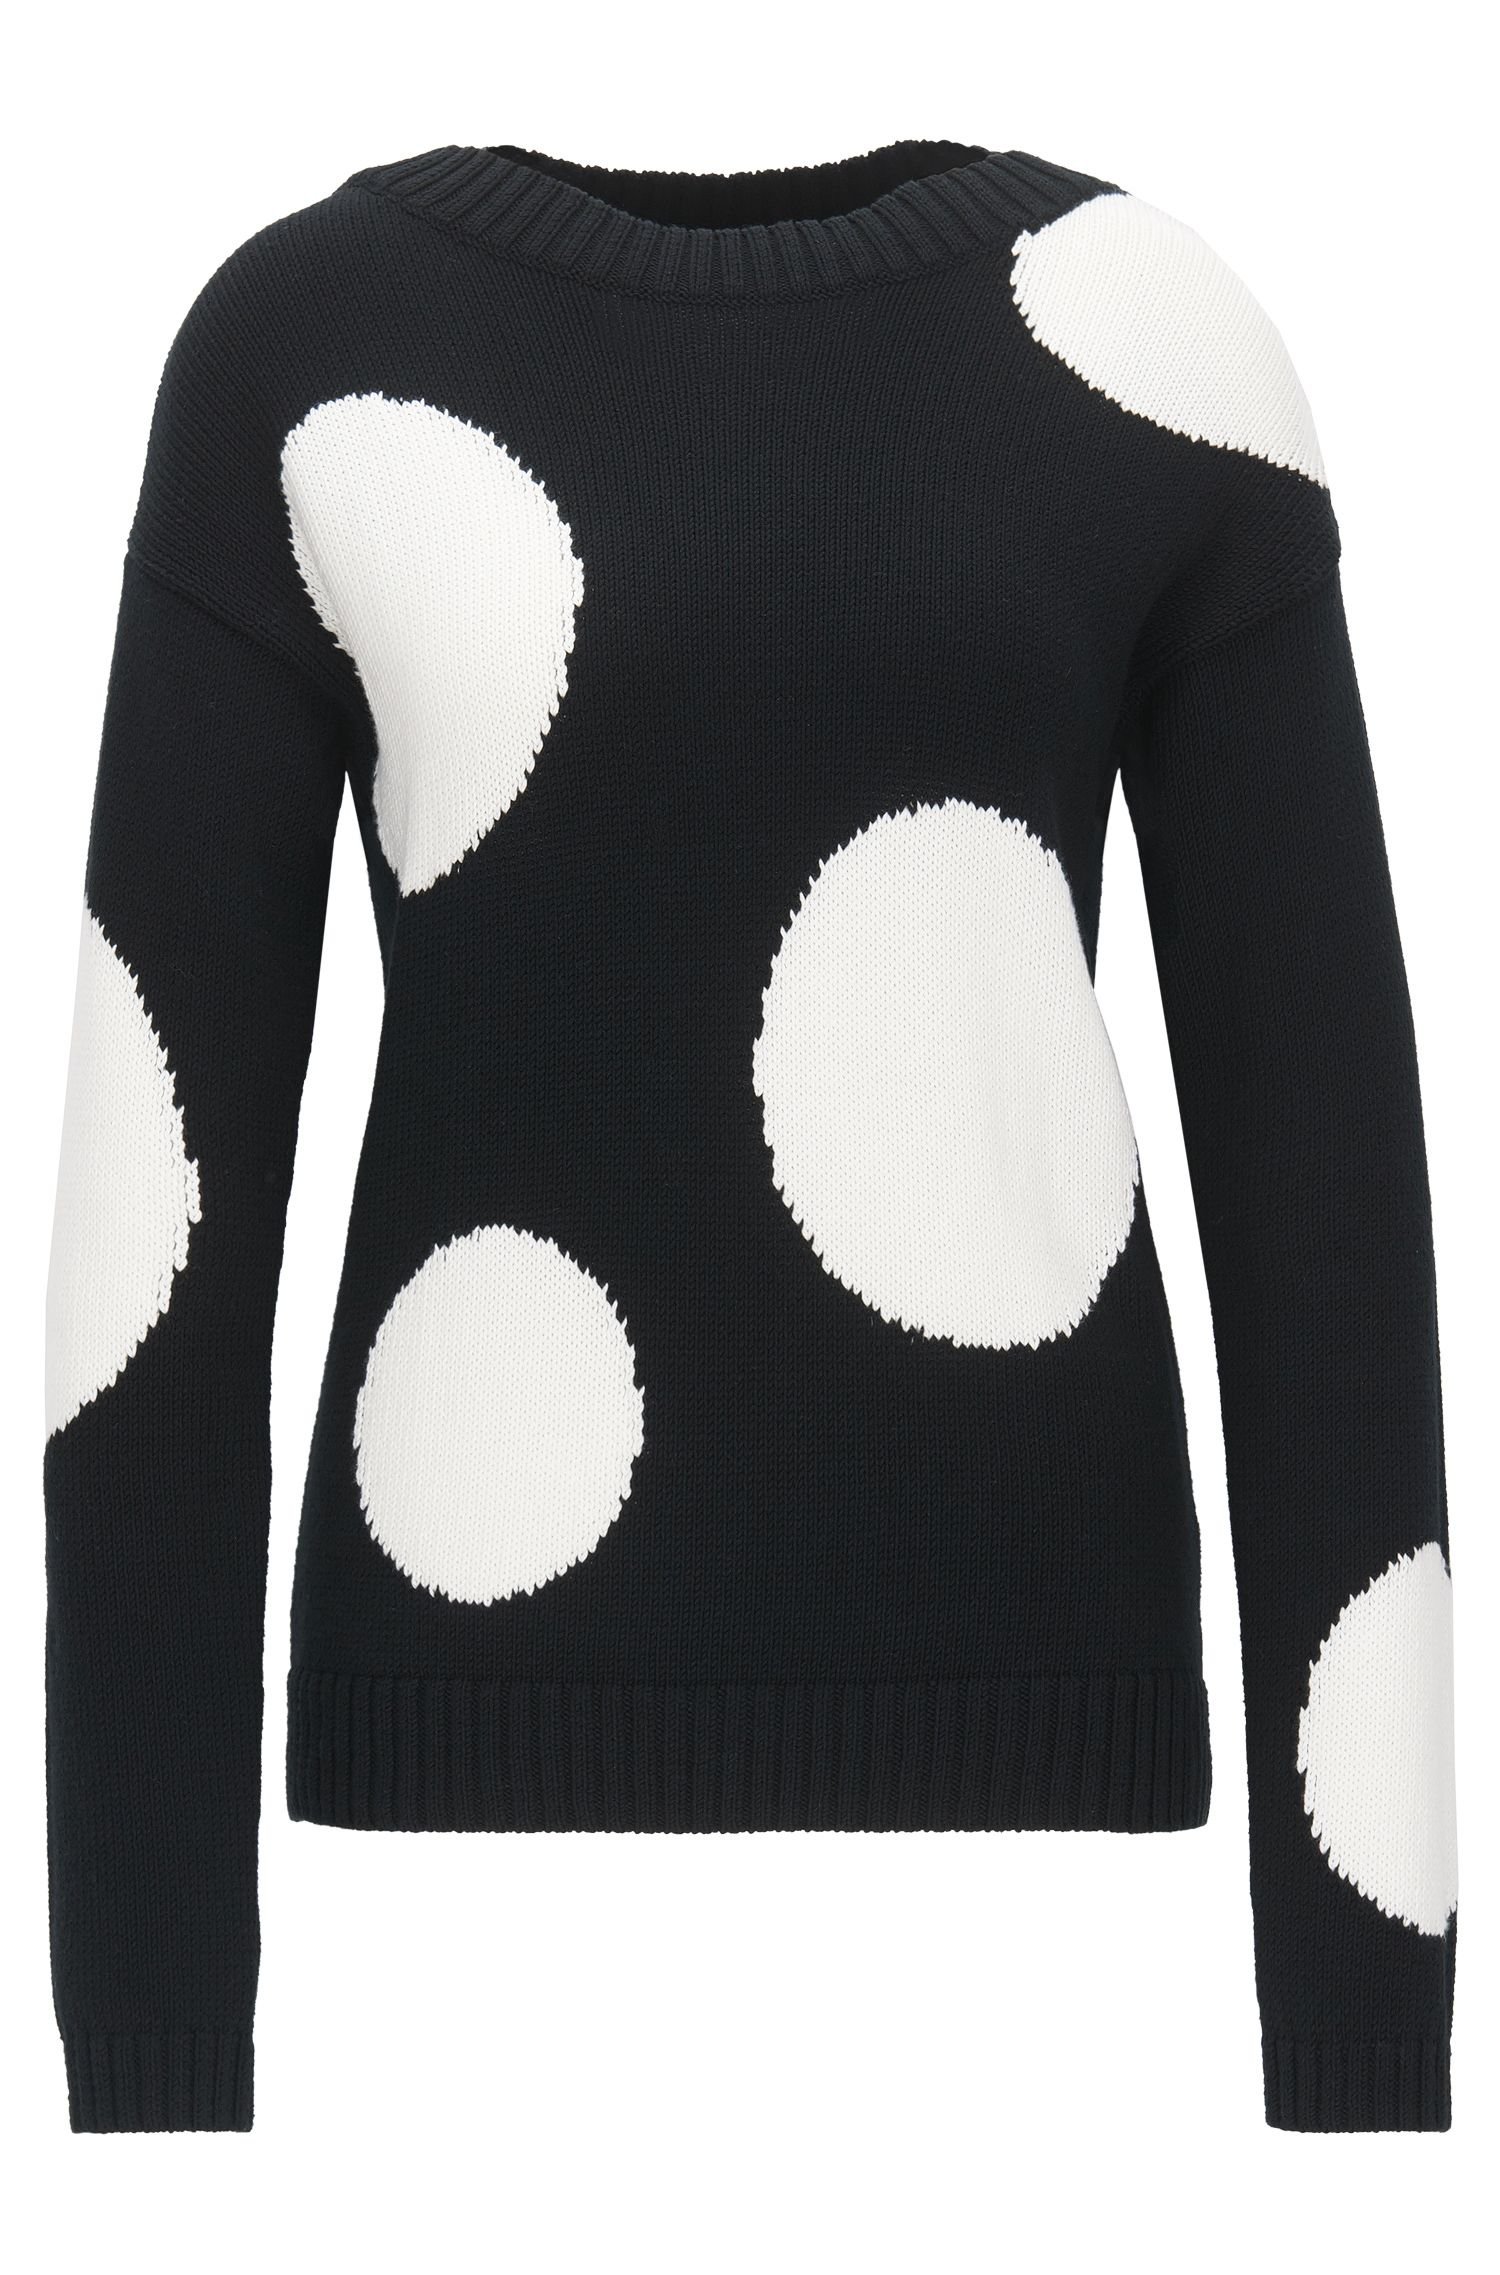 Relaxed-fit sweater in knitted cotton